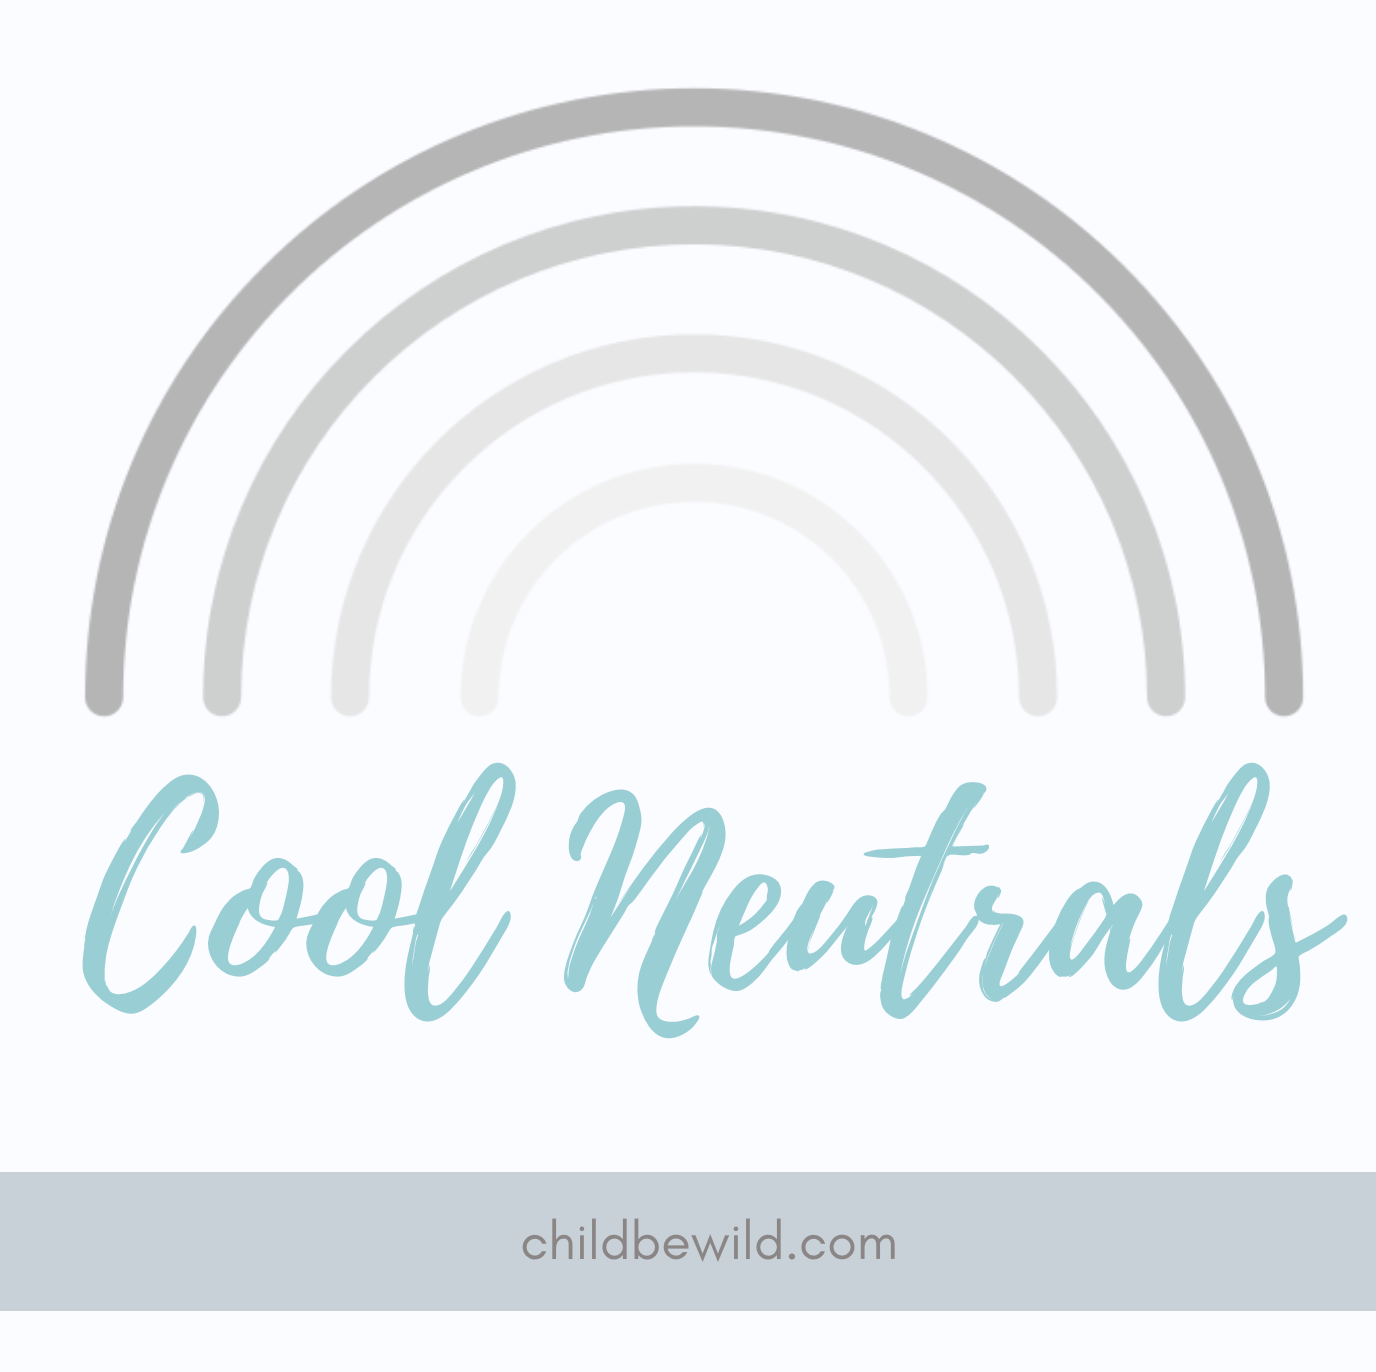 Cool Neutrals childbewild.com text below Shades of gray in rainbow illustration